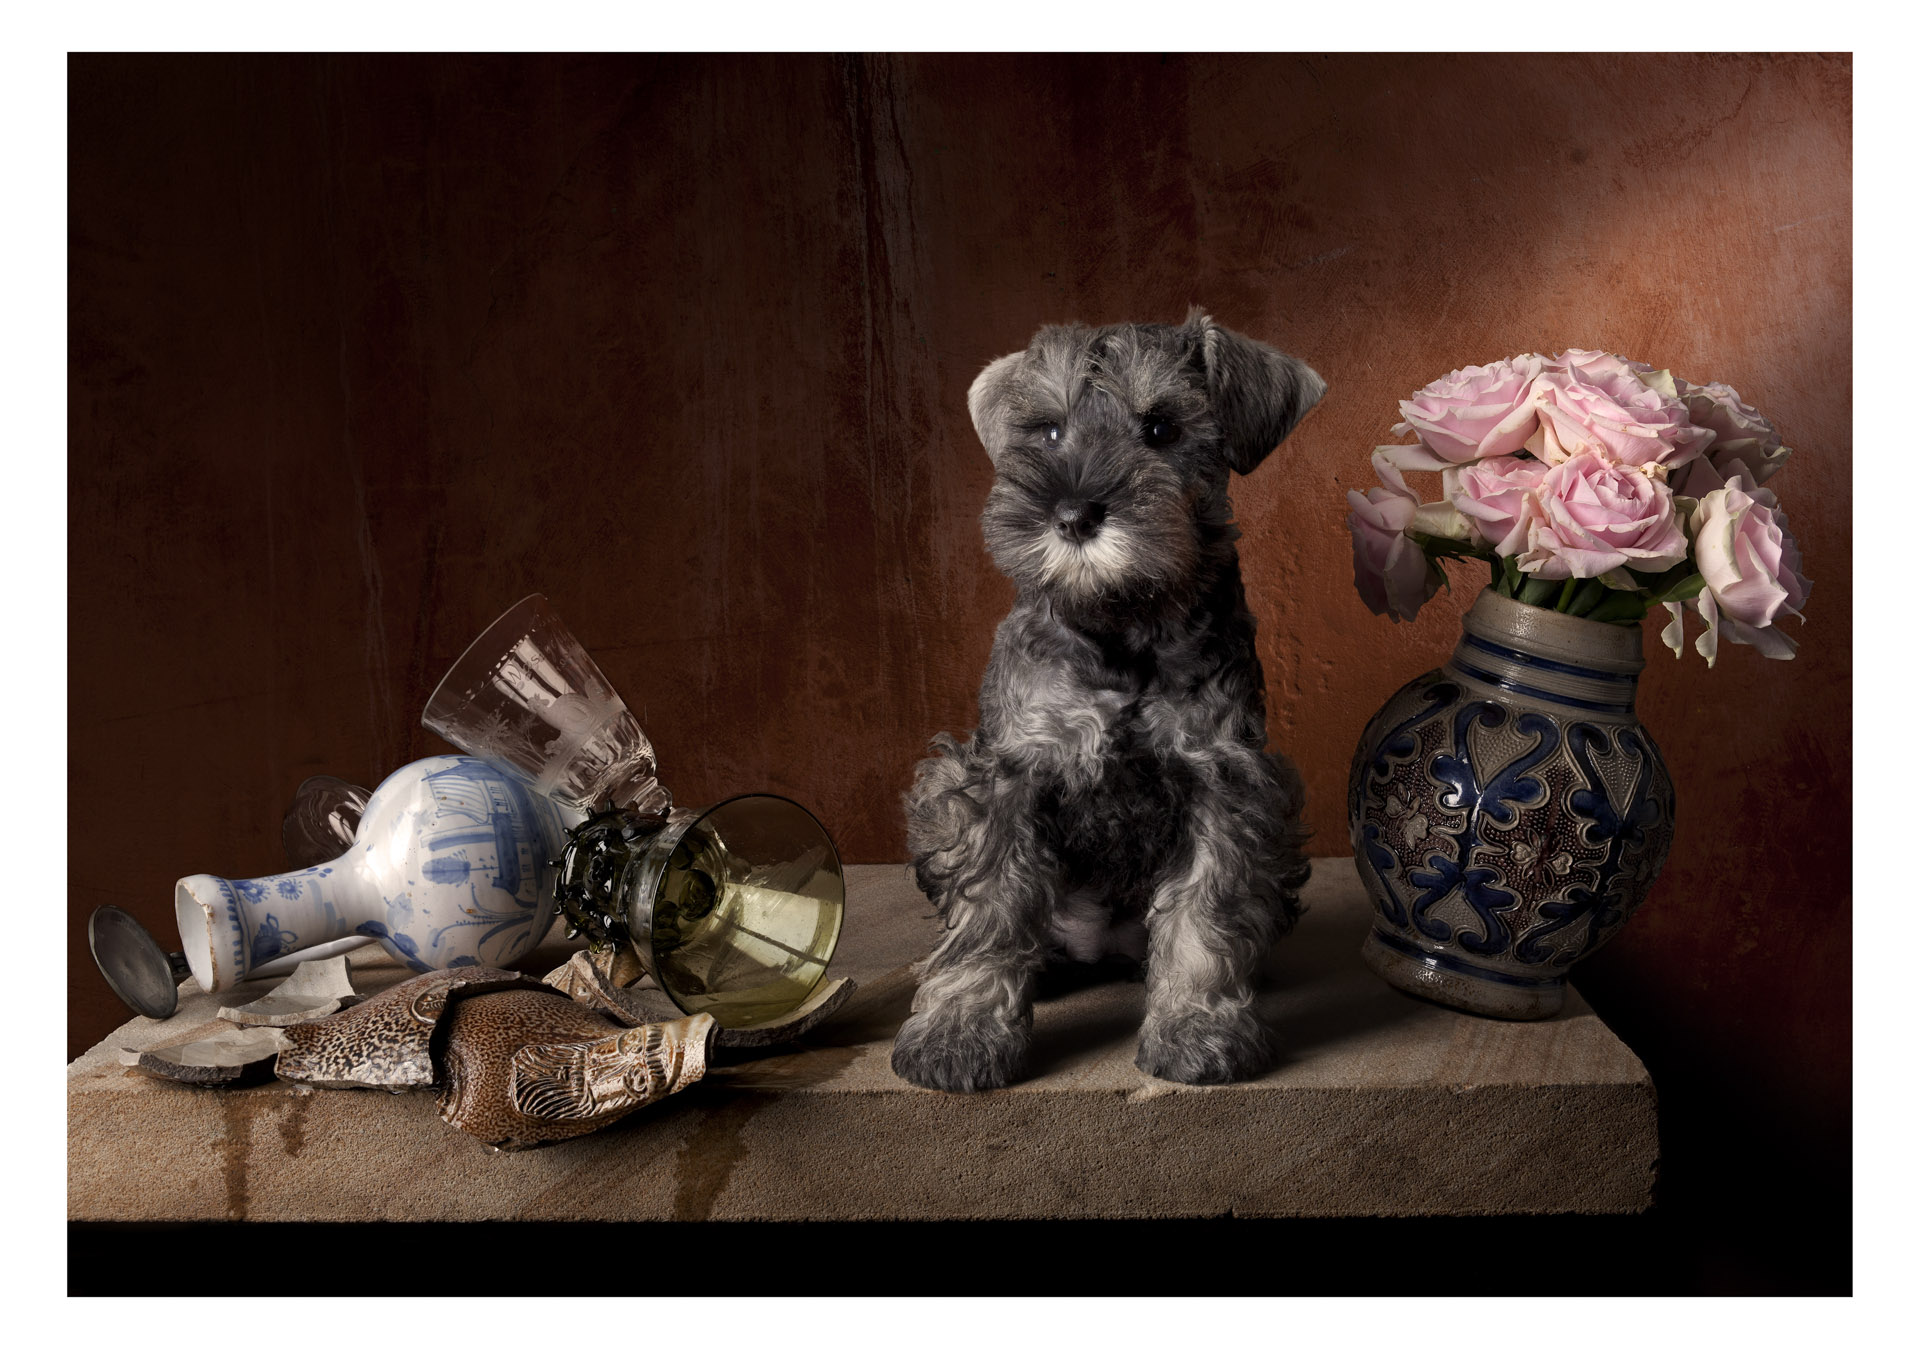 Still life with puppy